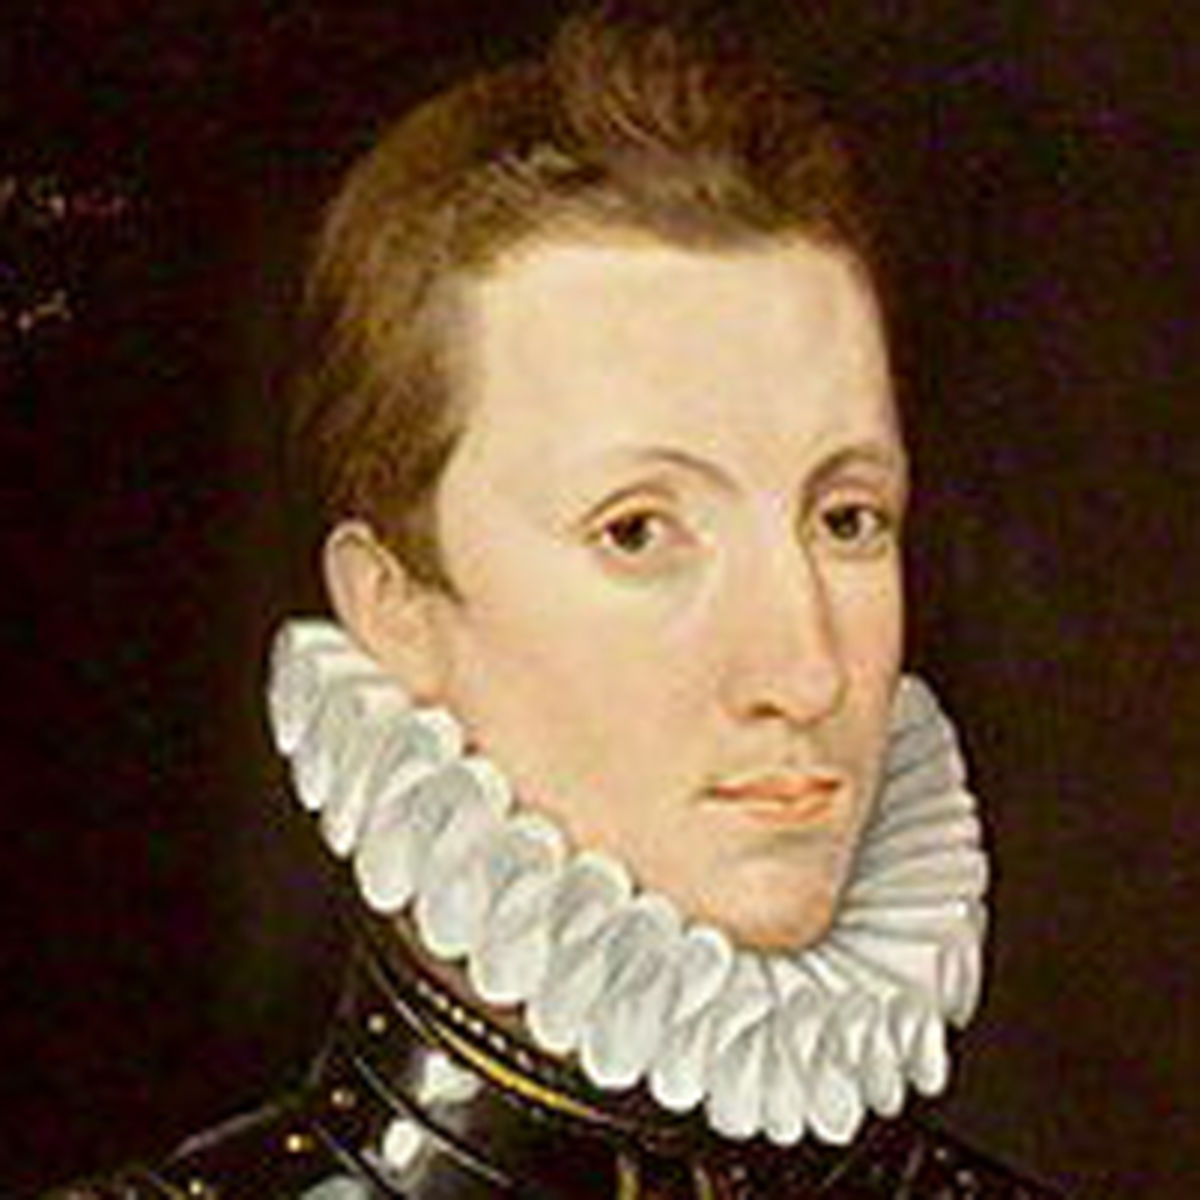 Sir Philip Sidney photo #7190, Sir Philip Sidney image